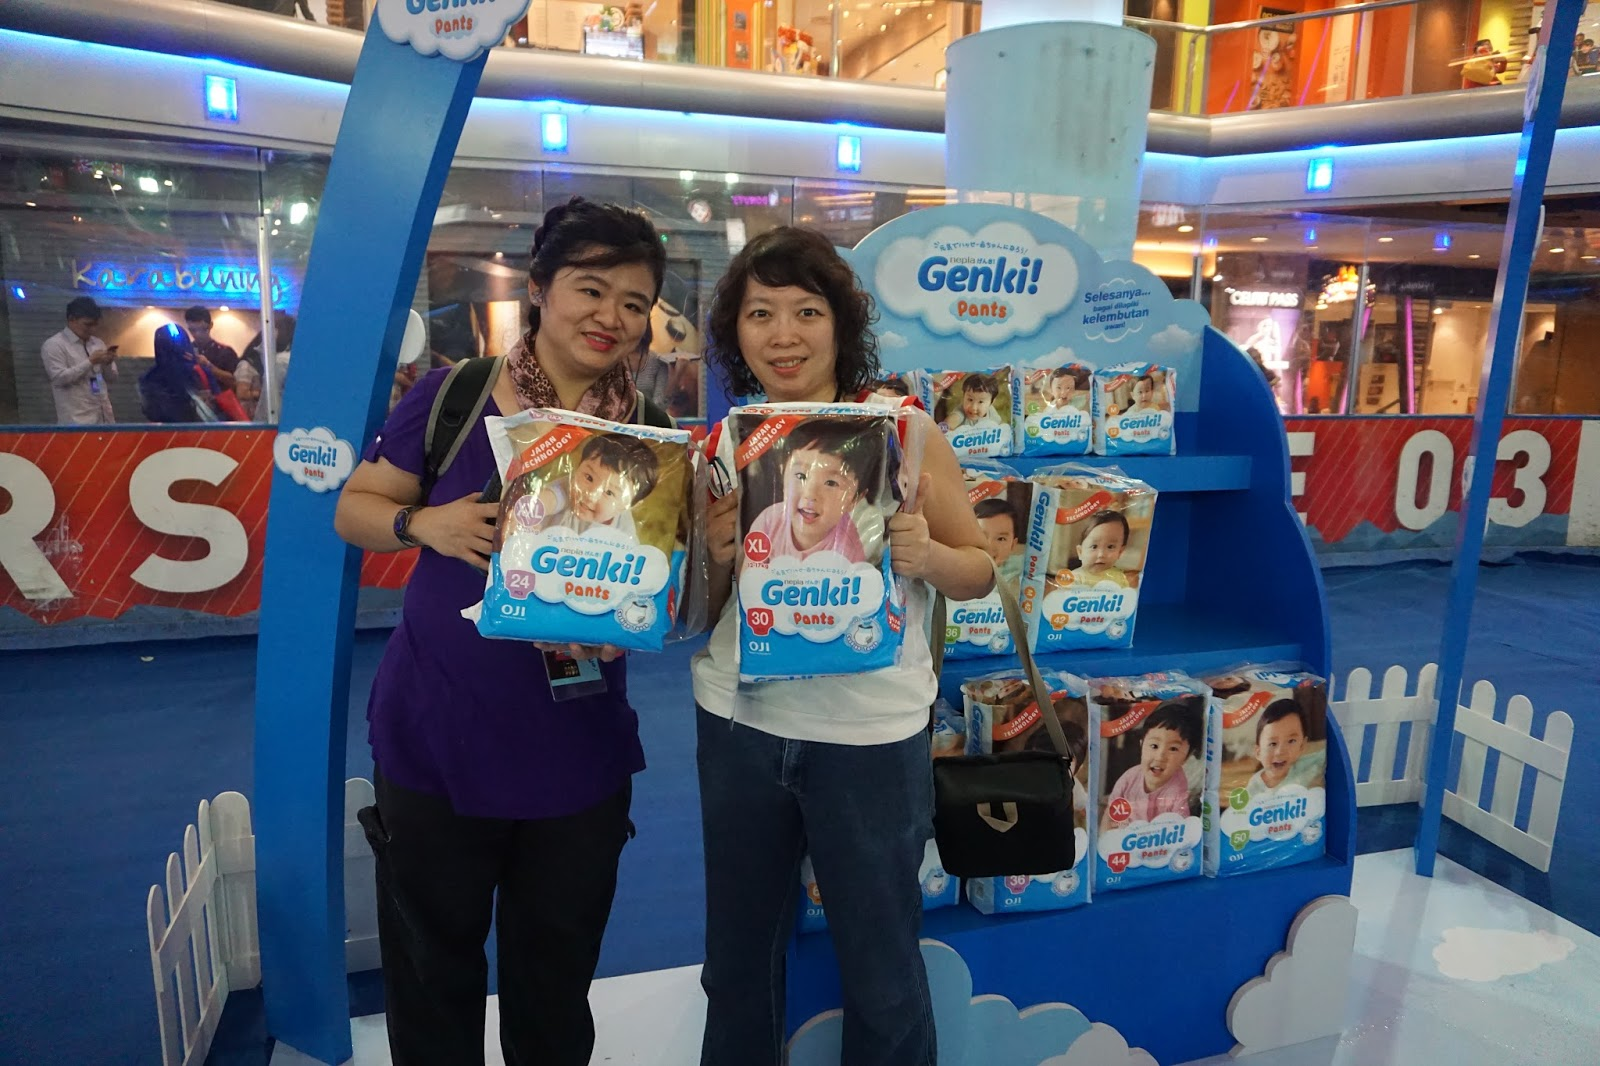 5 Little Angels Genki Launches New Diaper Pants On Mothers Day Nepia L 30 Me And Mommy Sherry With A Pack Of The Pant For Boy Girl Each